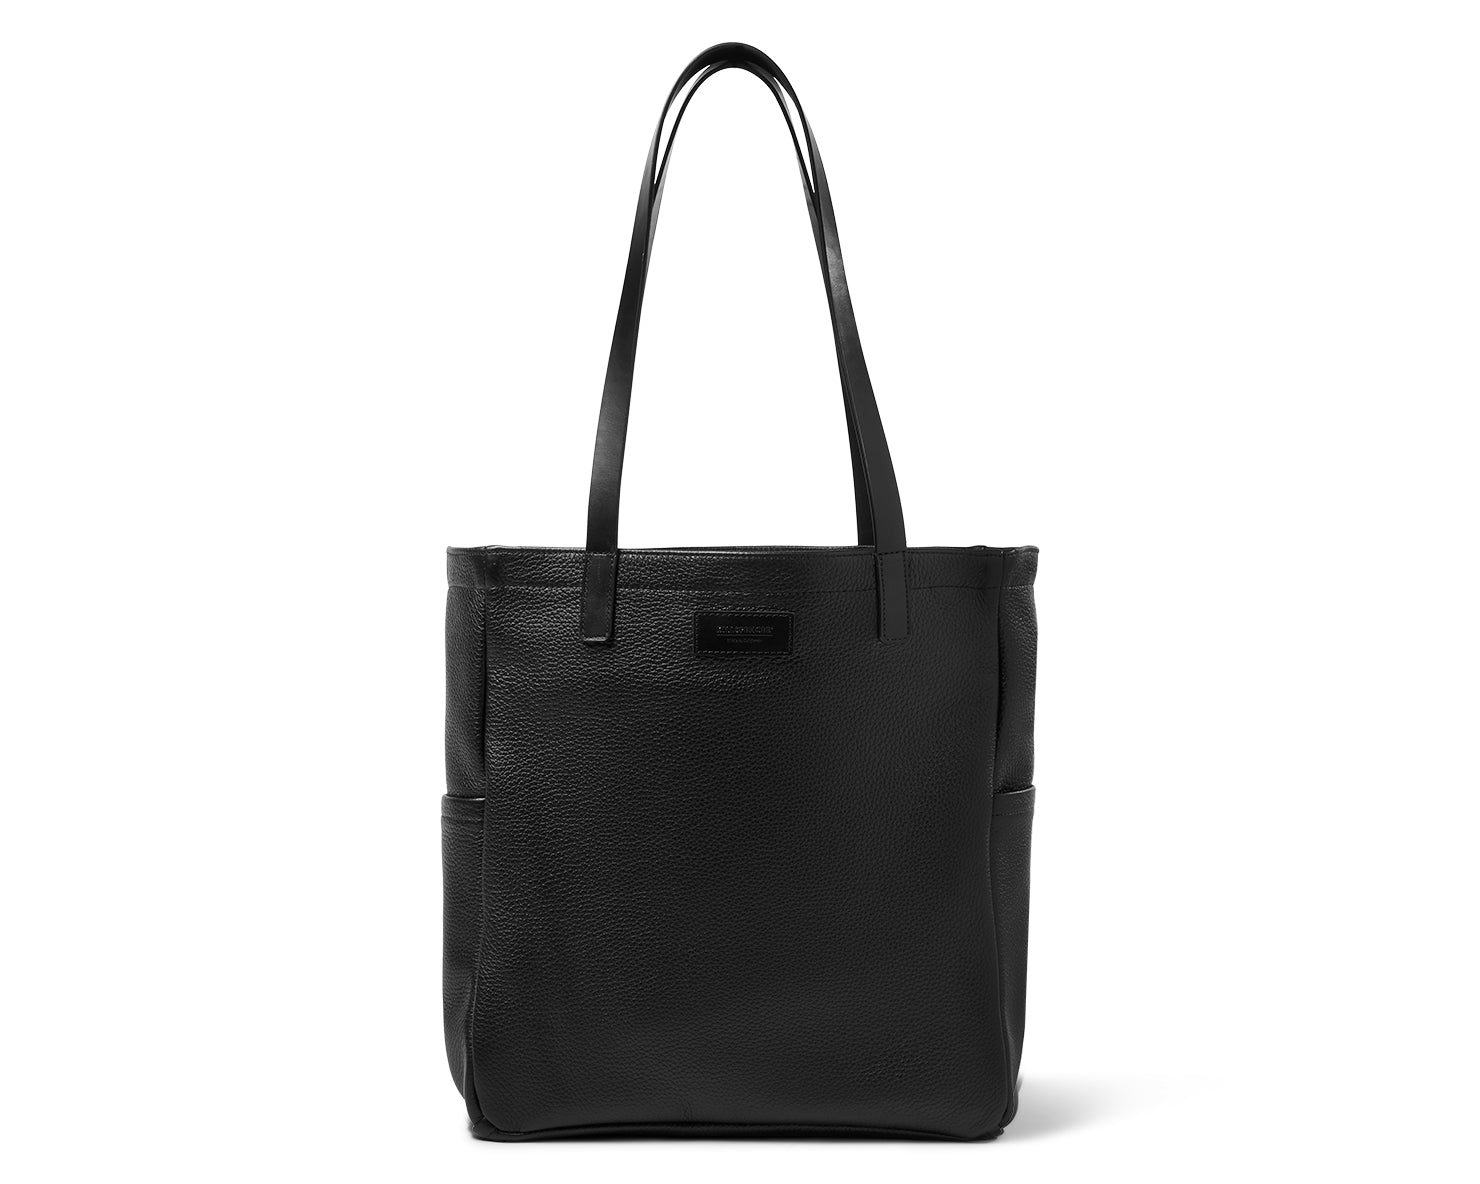 BOX TOTE | KILLSPENCER® - Black Leather